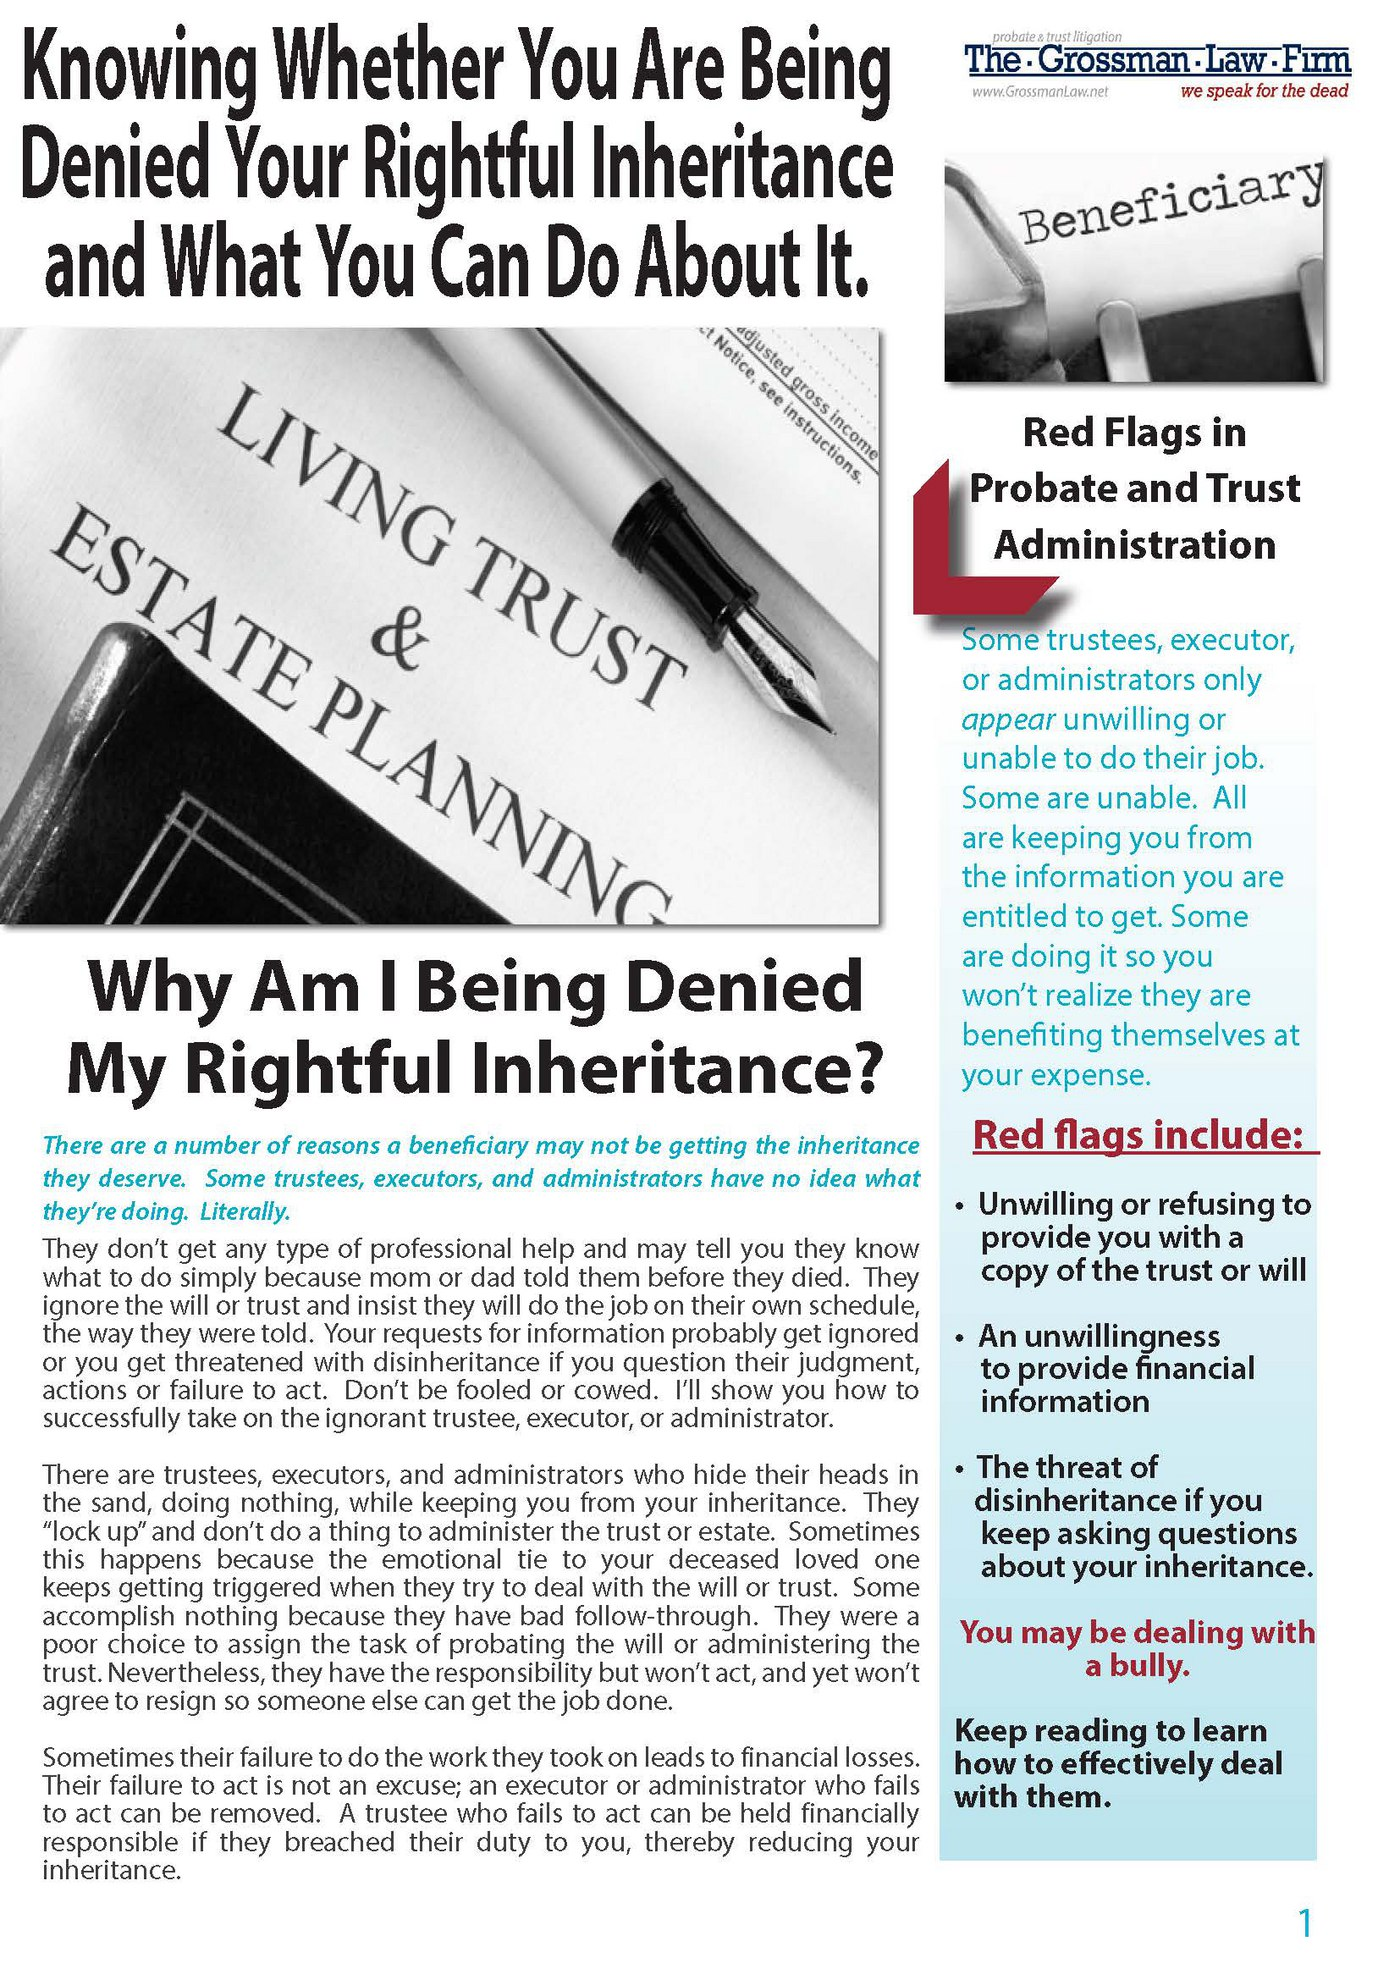 Why Am I Being Denied My Rightful Inheritance?